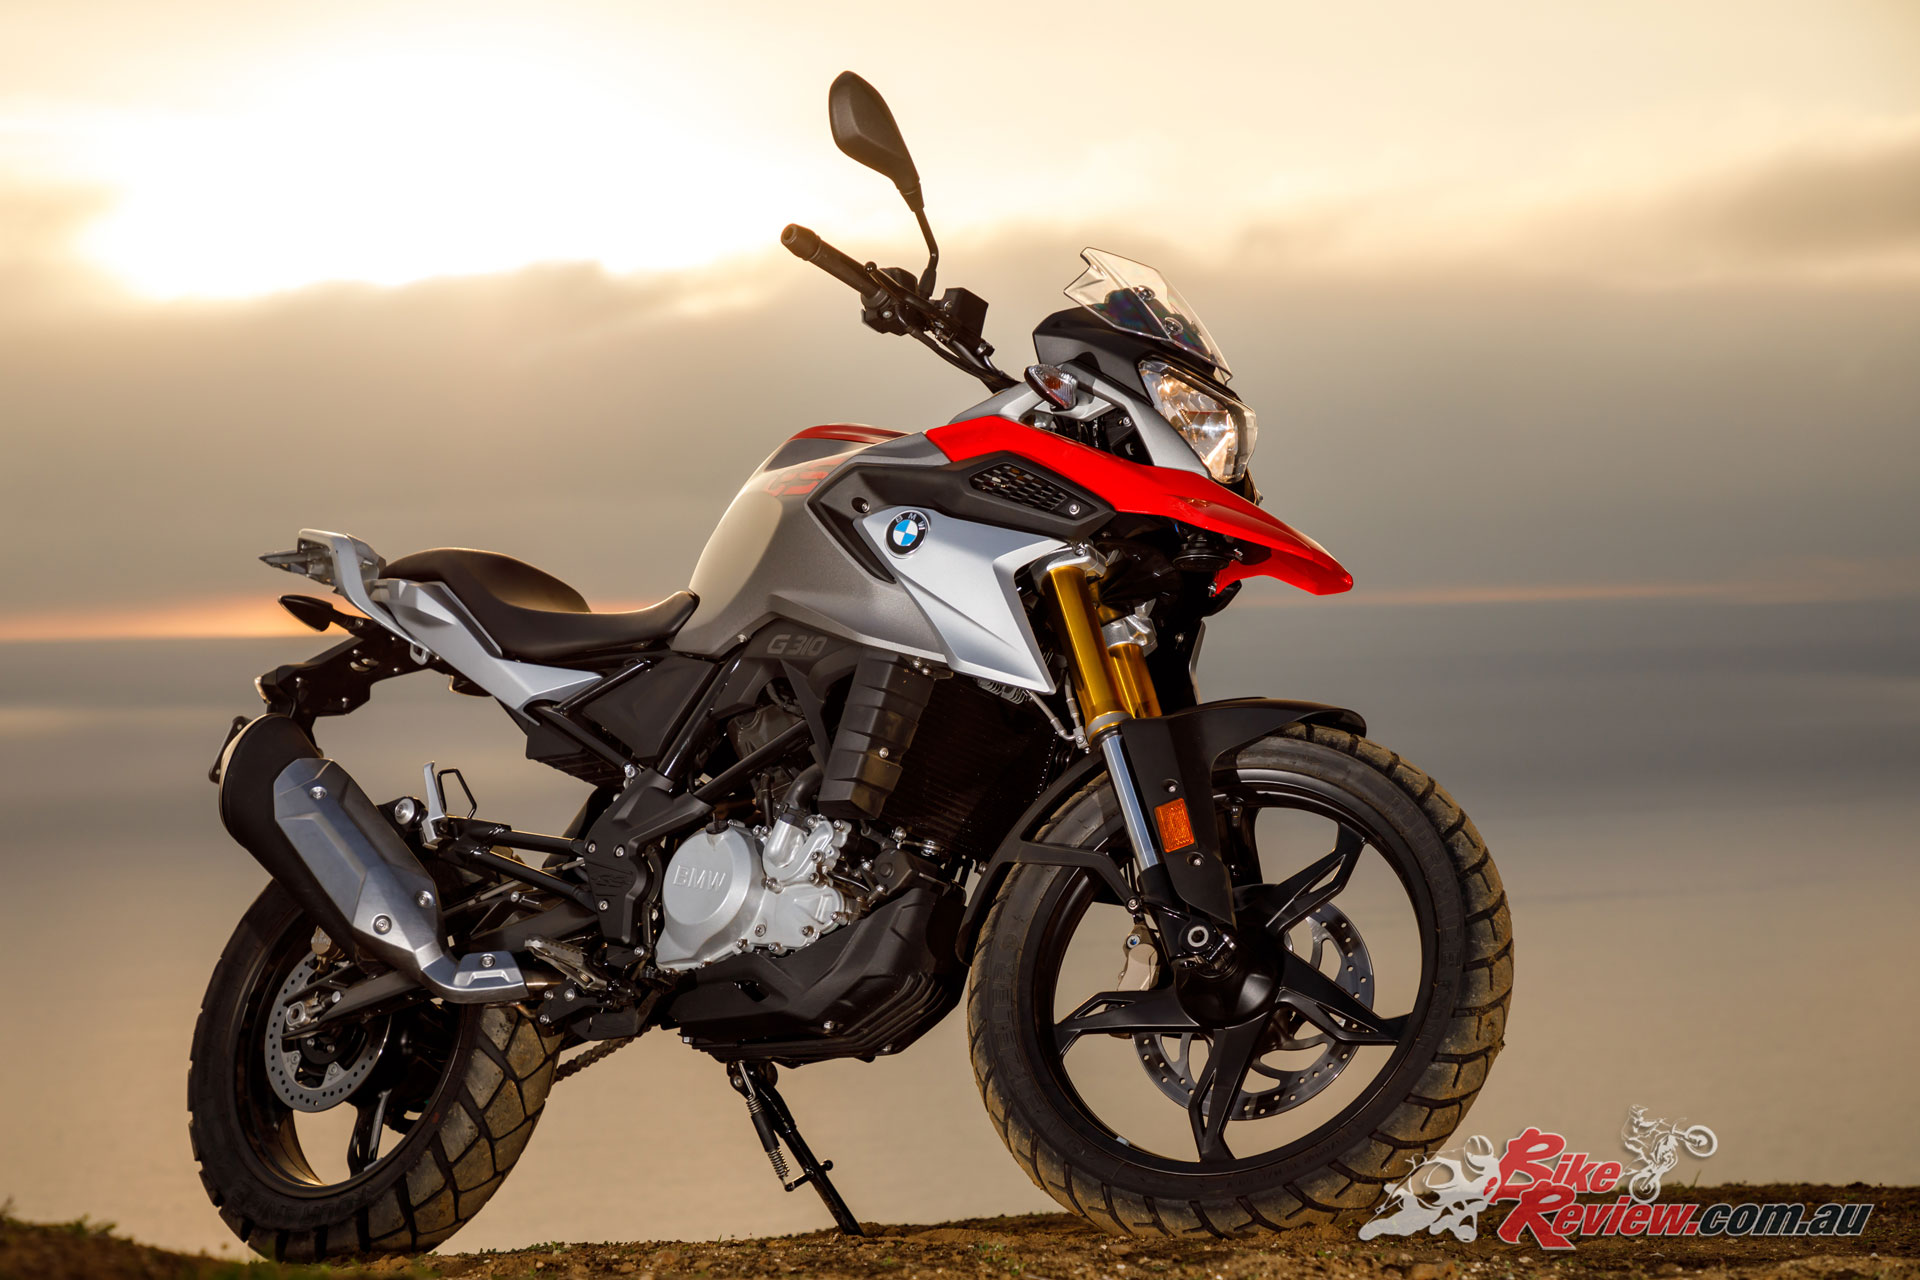 BMW's G 310 GS is arriving in OZ